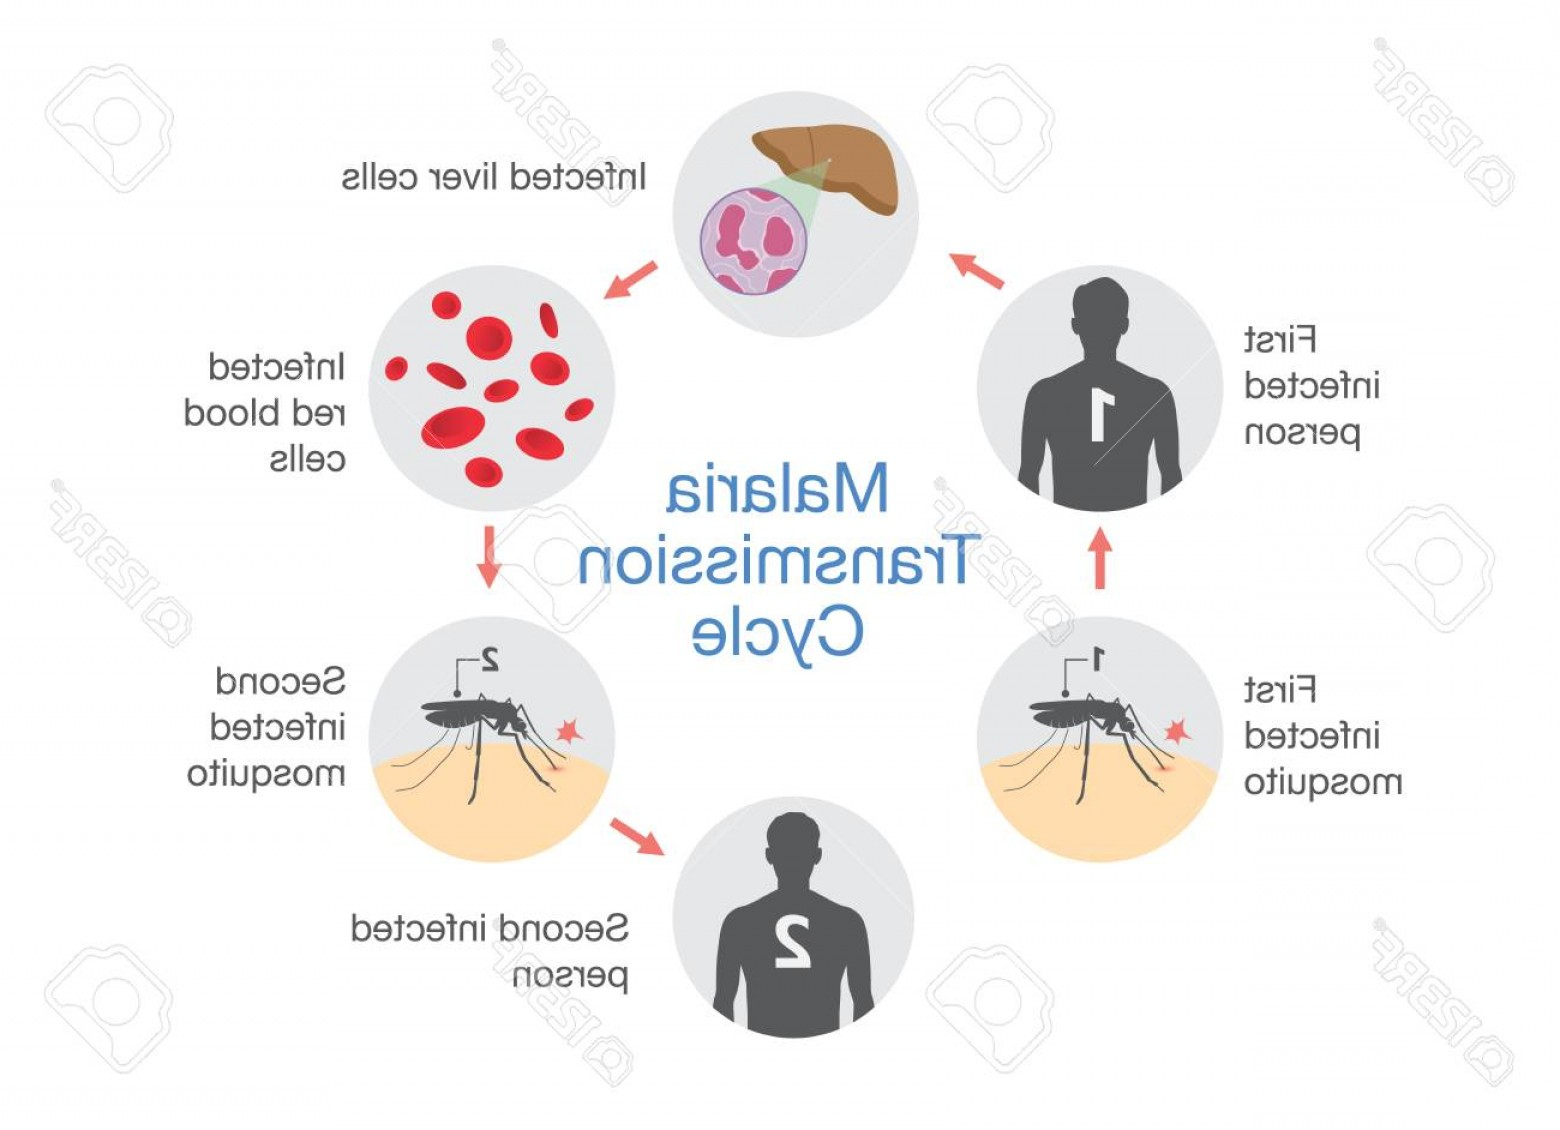 Vector Organisms On A Person: Photostock Vector Illustration Showing Malaria Transmission Cycle Step Of Infections In People With Mosquito